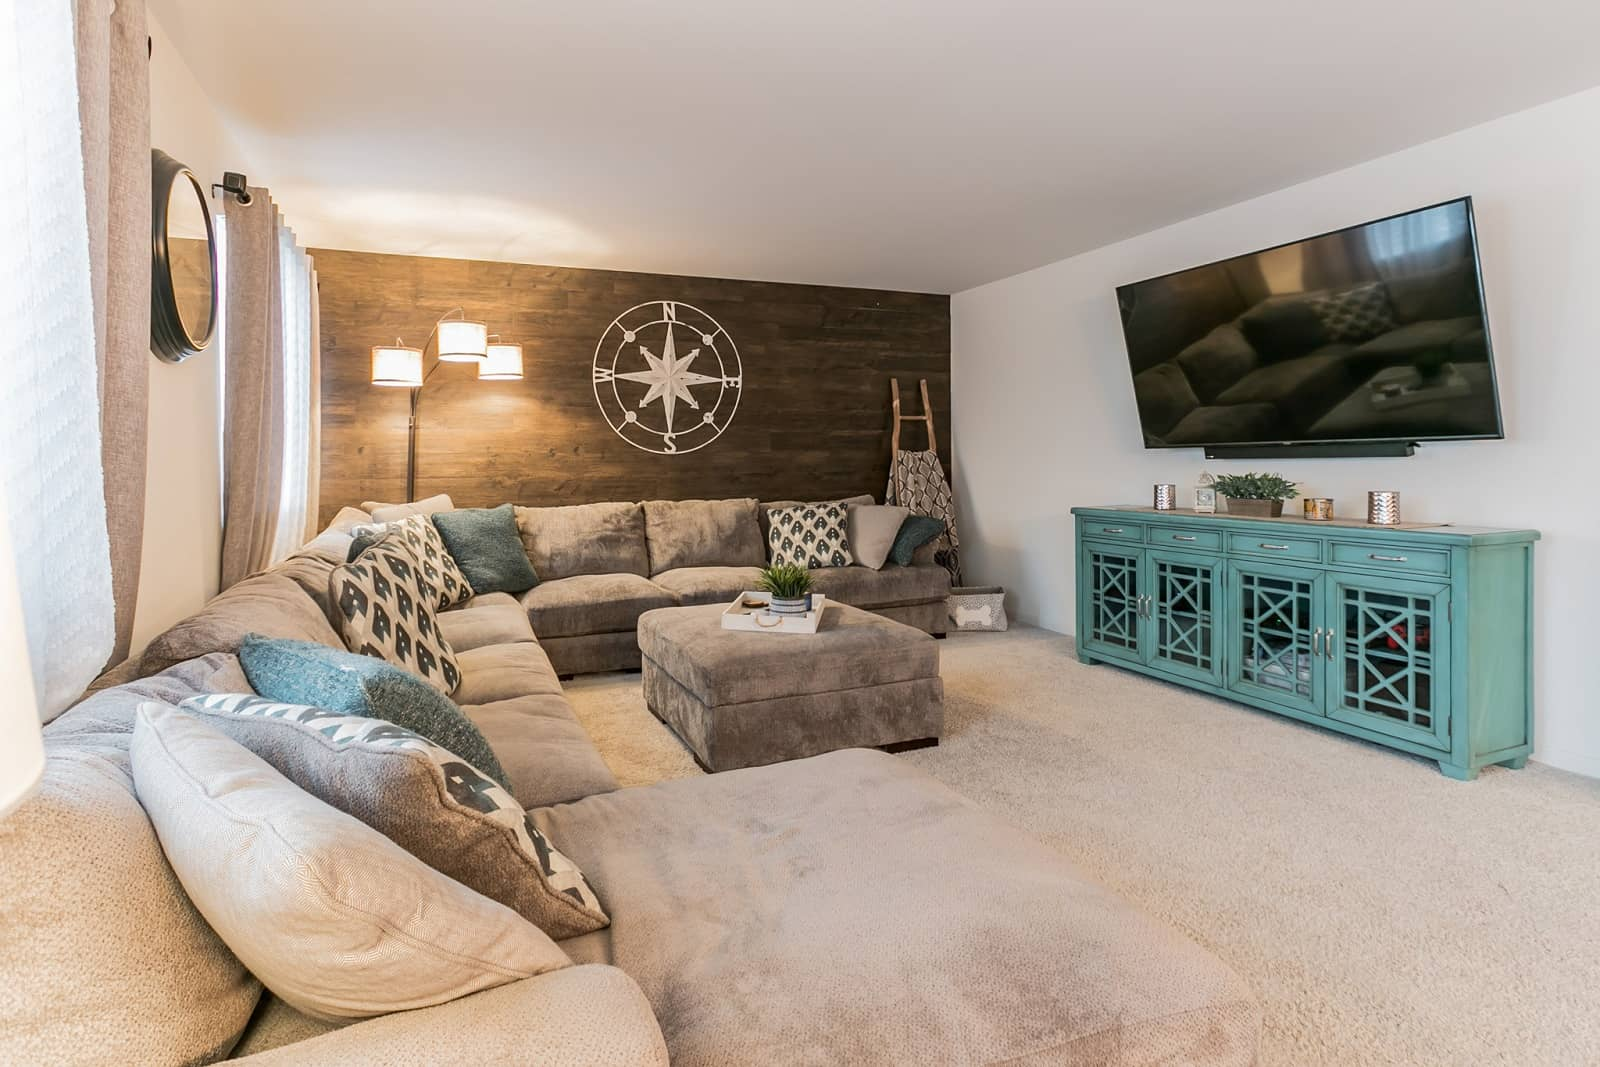 Real Estate Photography in Joliet - IL - USA - Living Area View